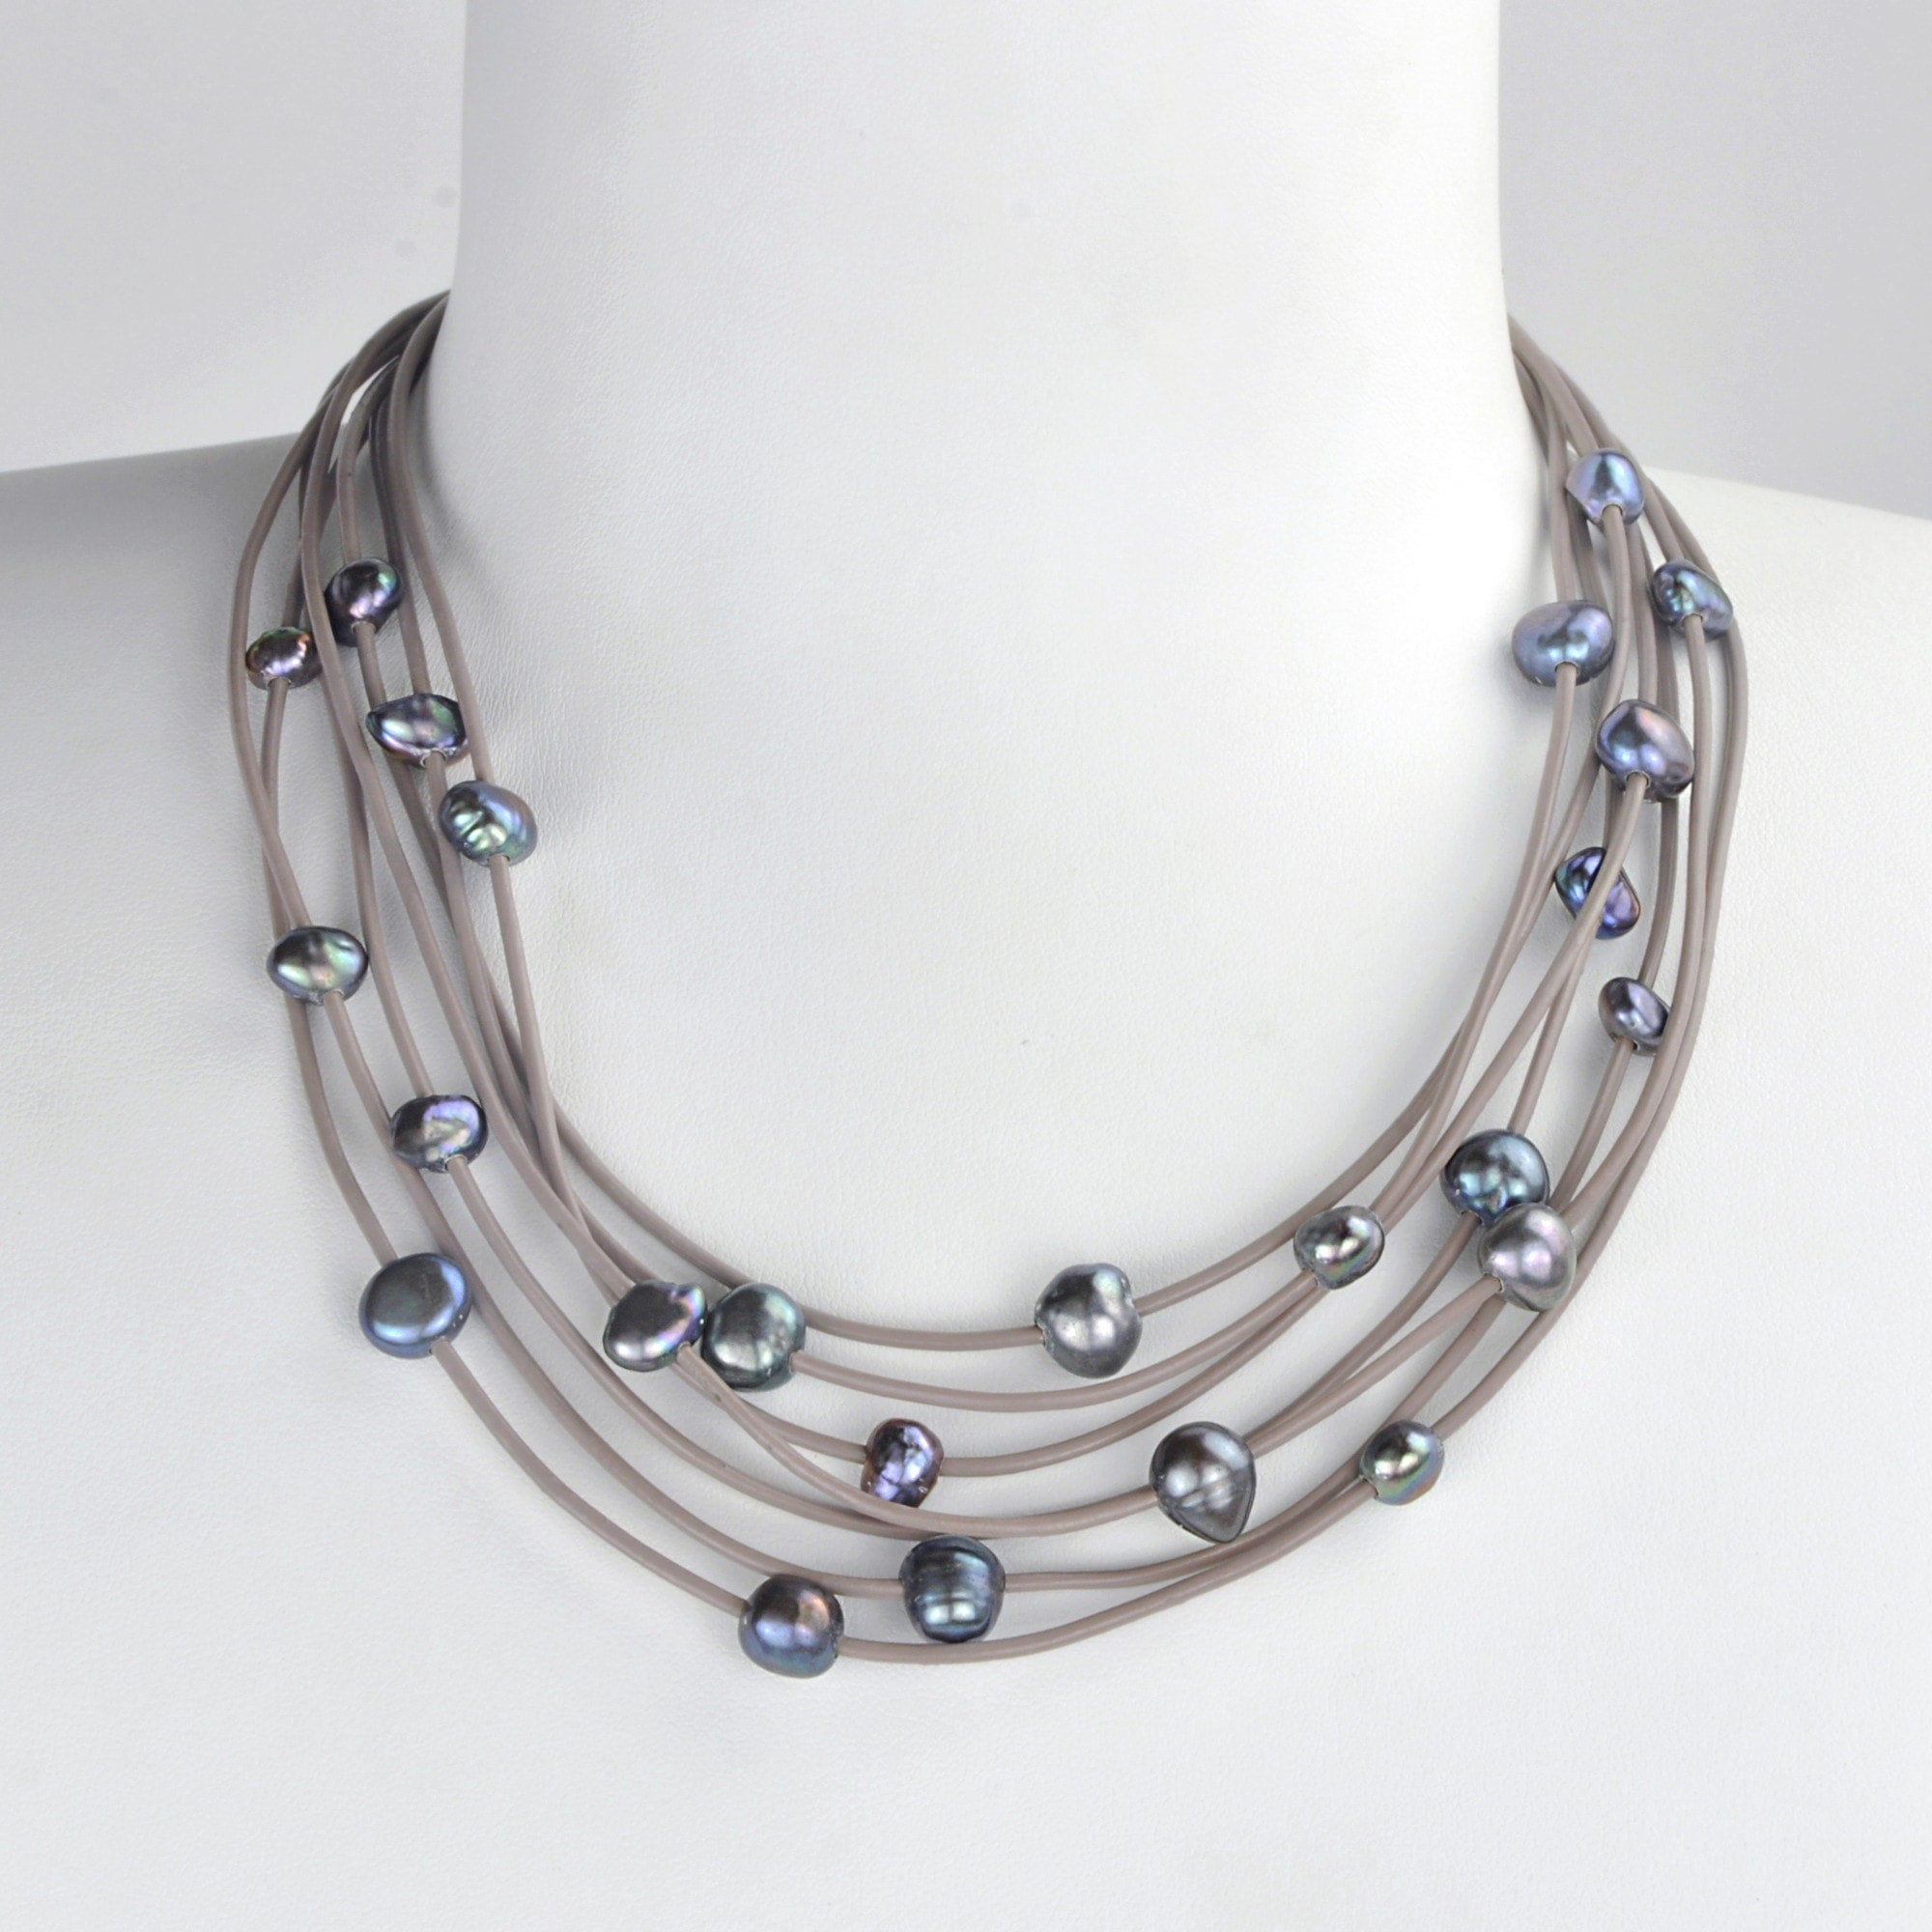 Collier Constellation de cuir taupe - Nuit